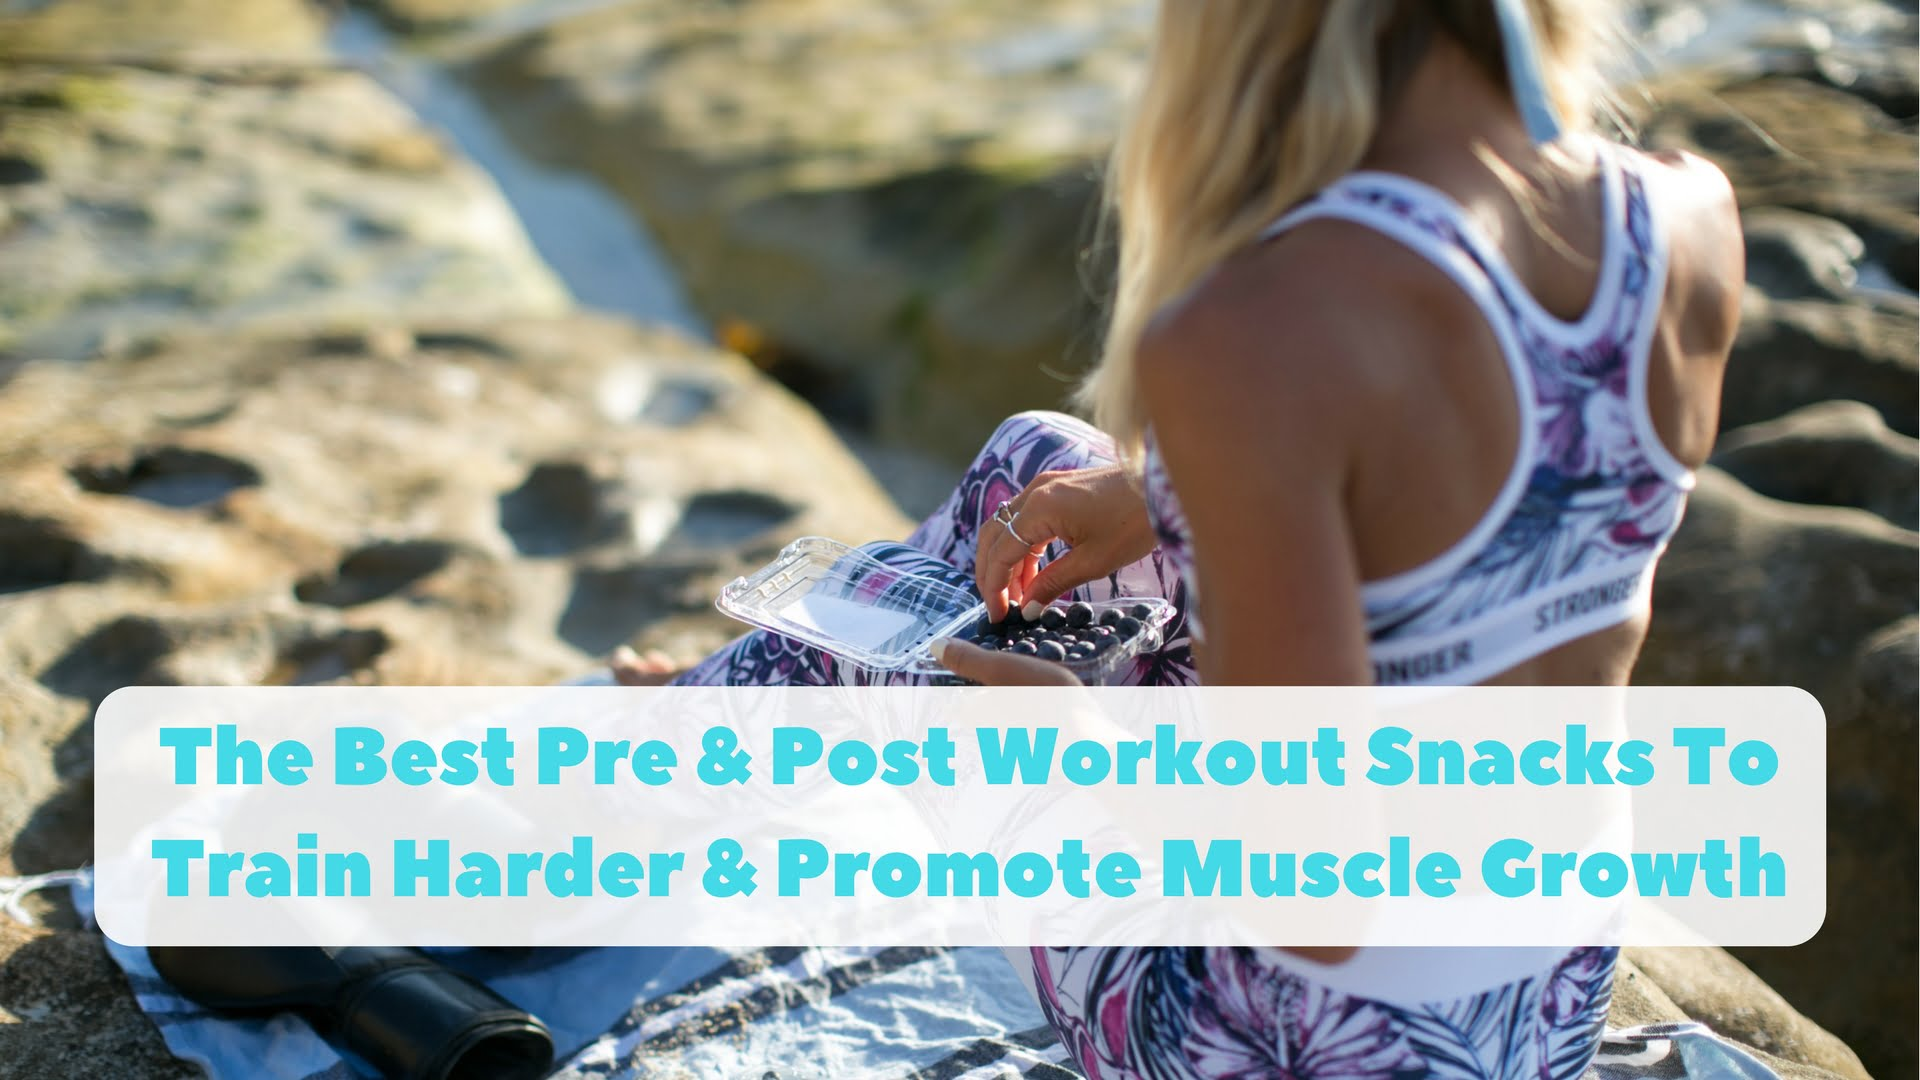 The Best Pre & Post Workout Snacks To Train Harder & Promote Muscle Growth